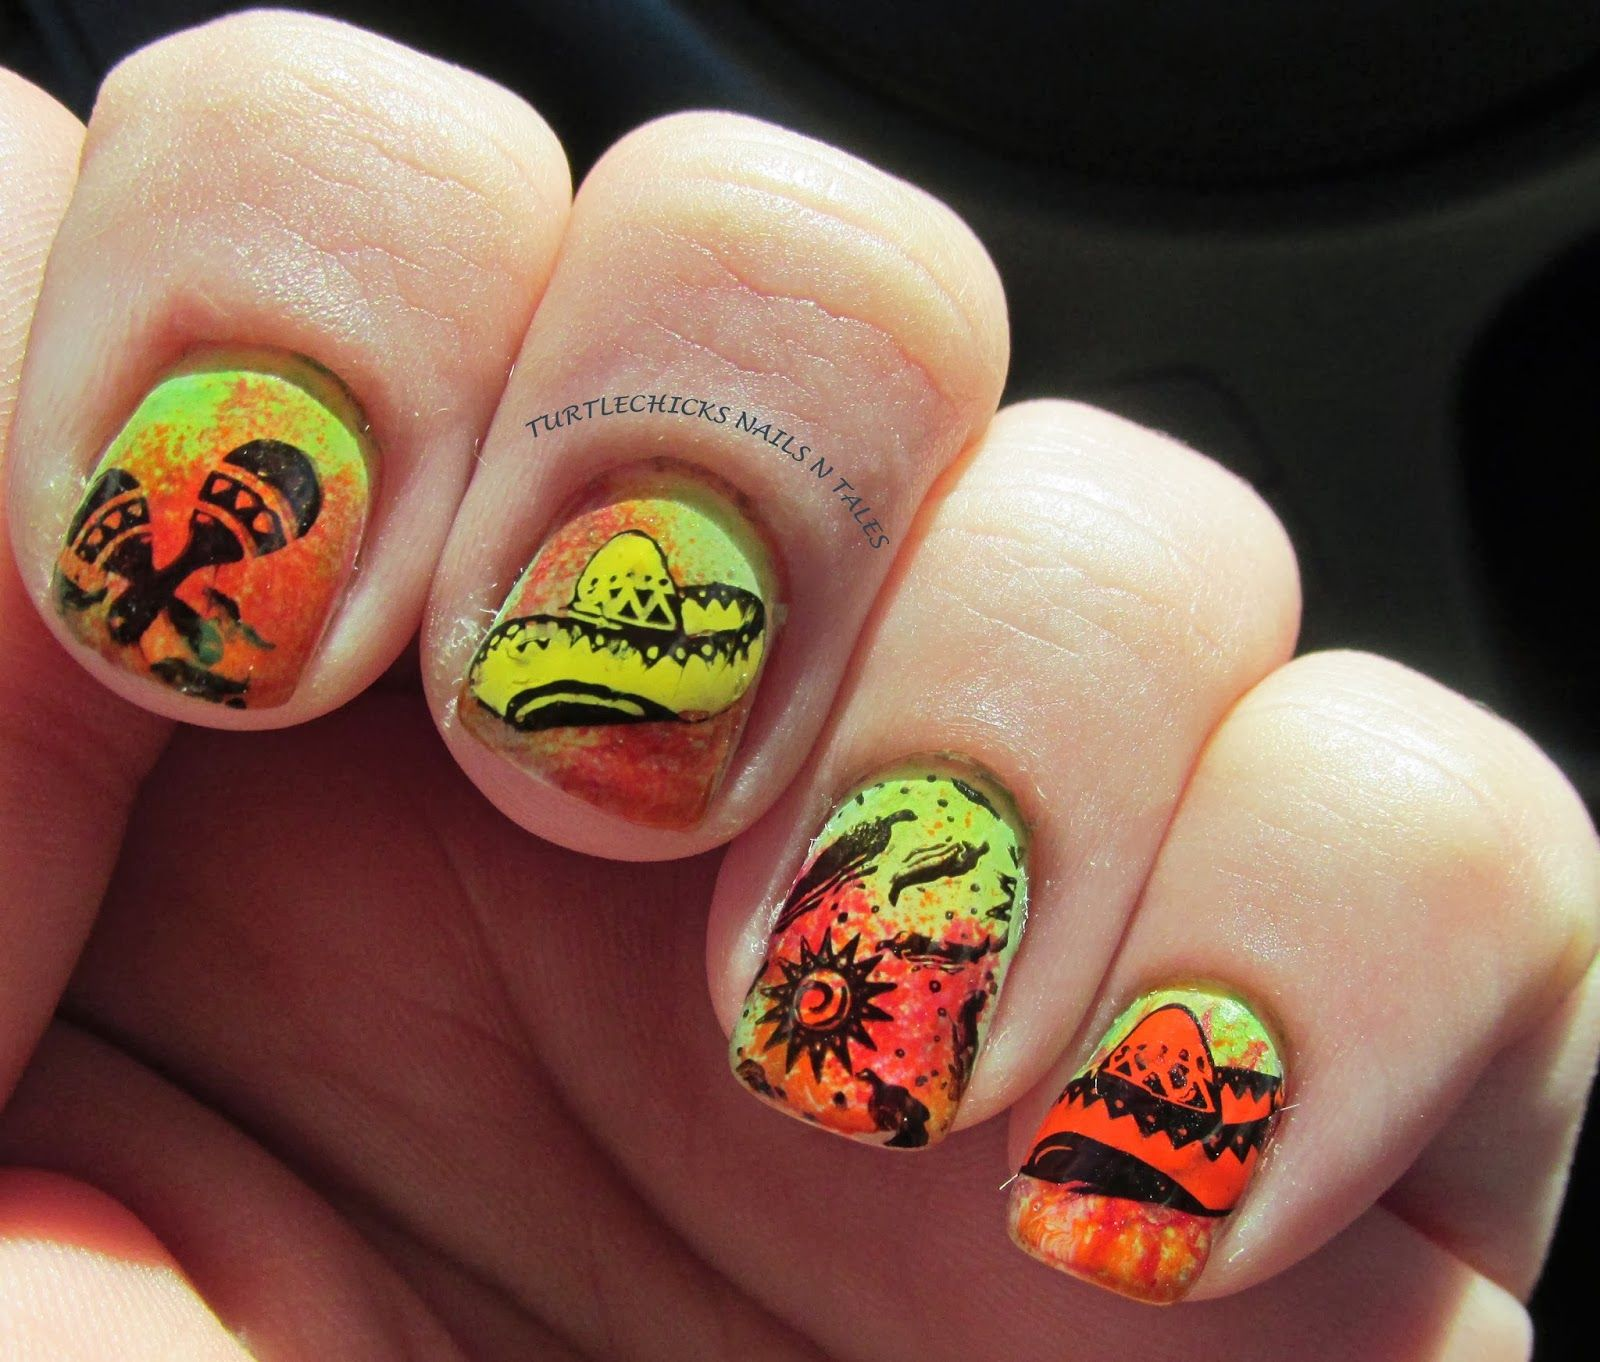 Turtlechicks nails n tales mexican nails my nail art turtlechicks nails n tales mexican nails prinsesfo Image collections